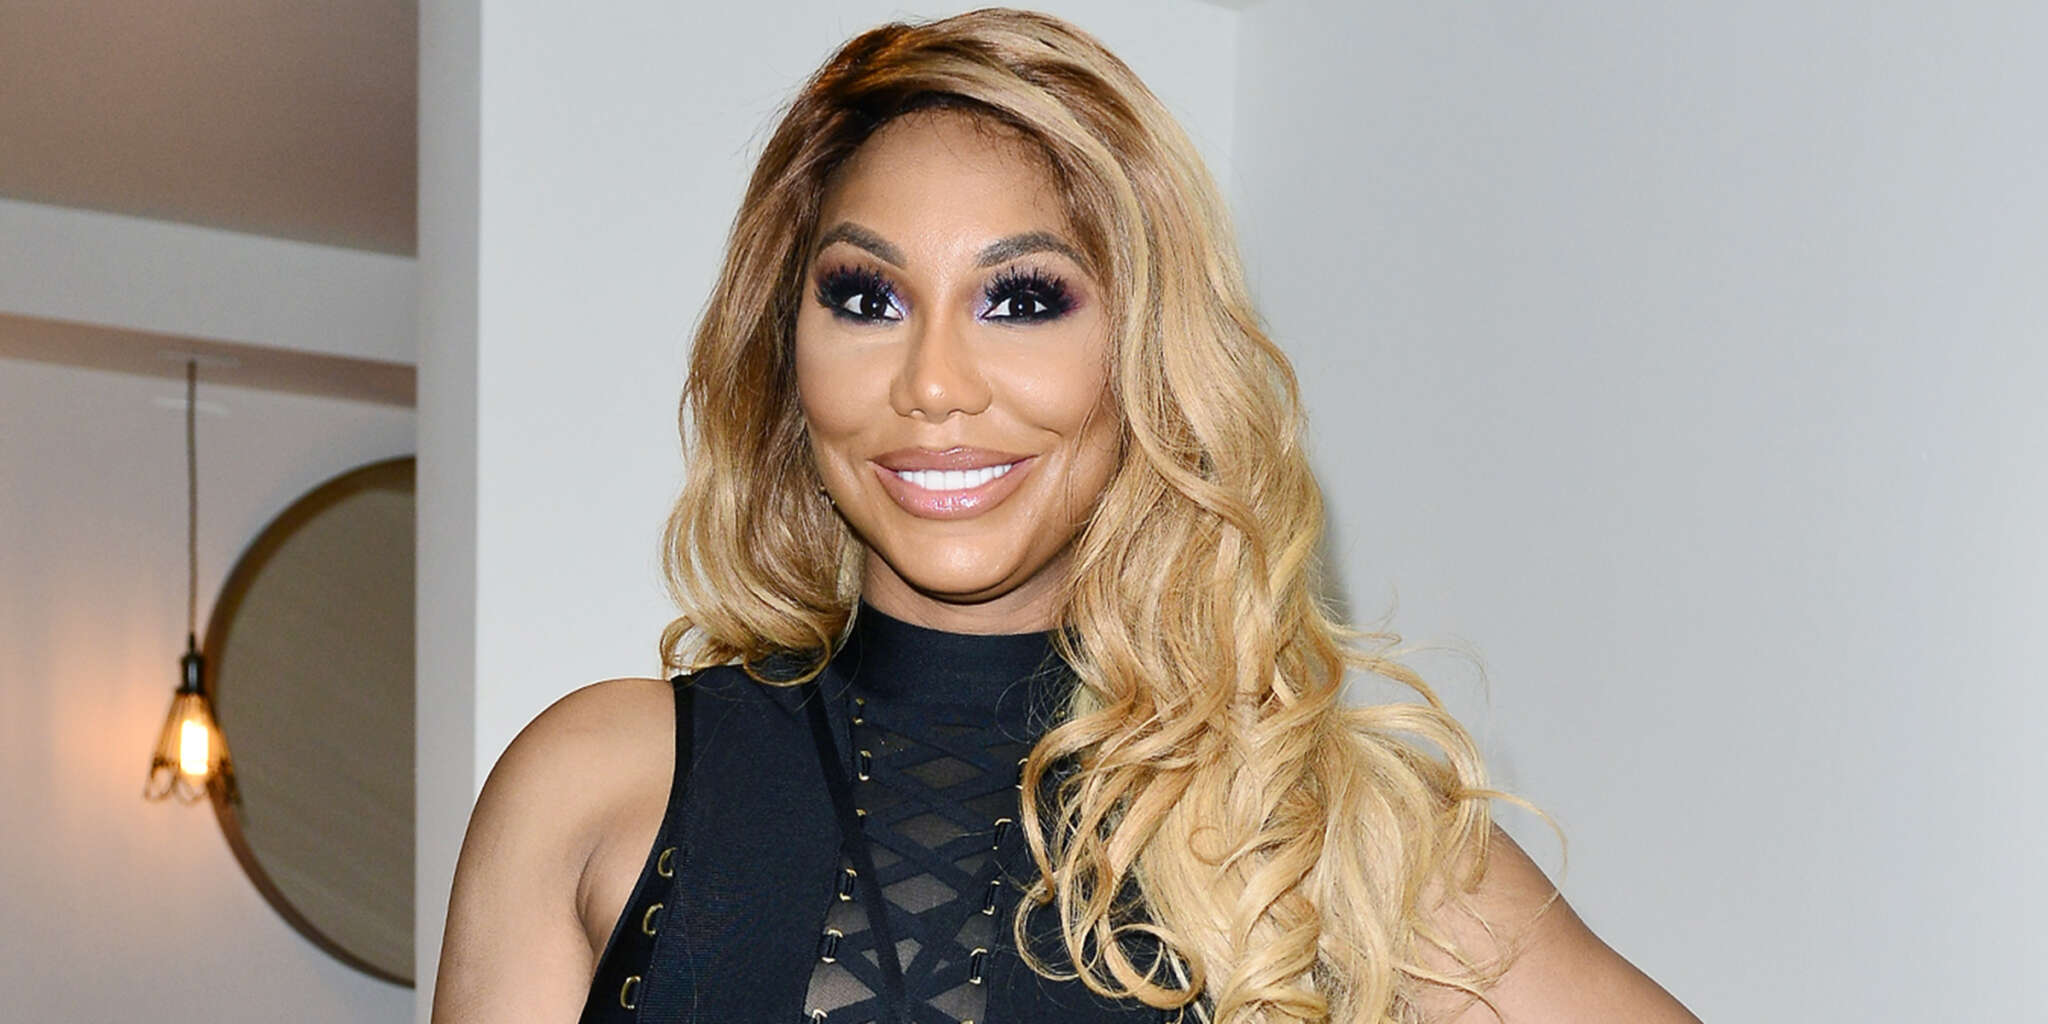 tamar-braxton-tells-fans-that-its-never-good-to-fake-the-funk-in-life